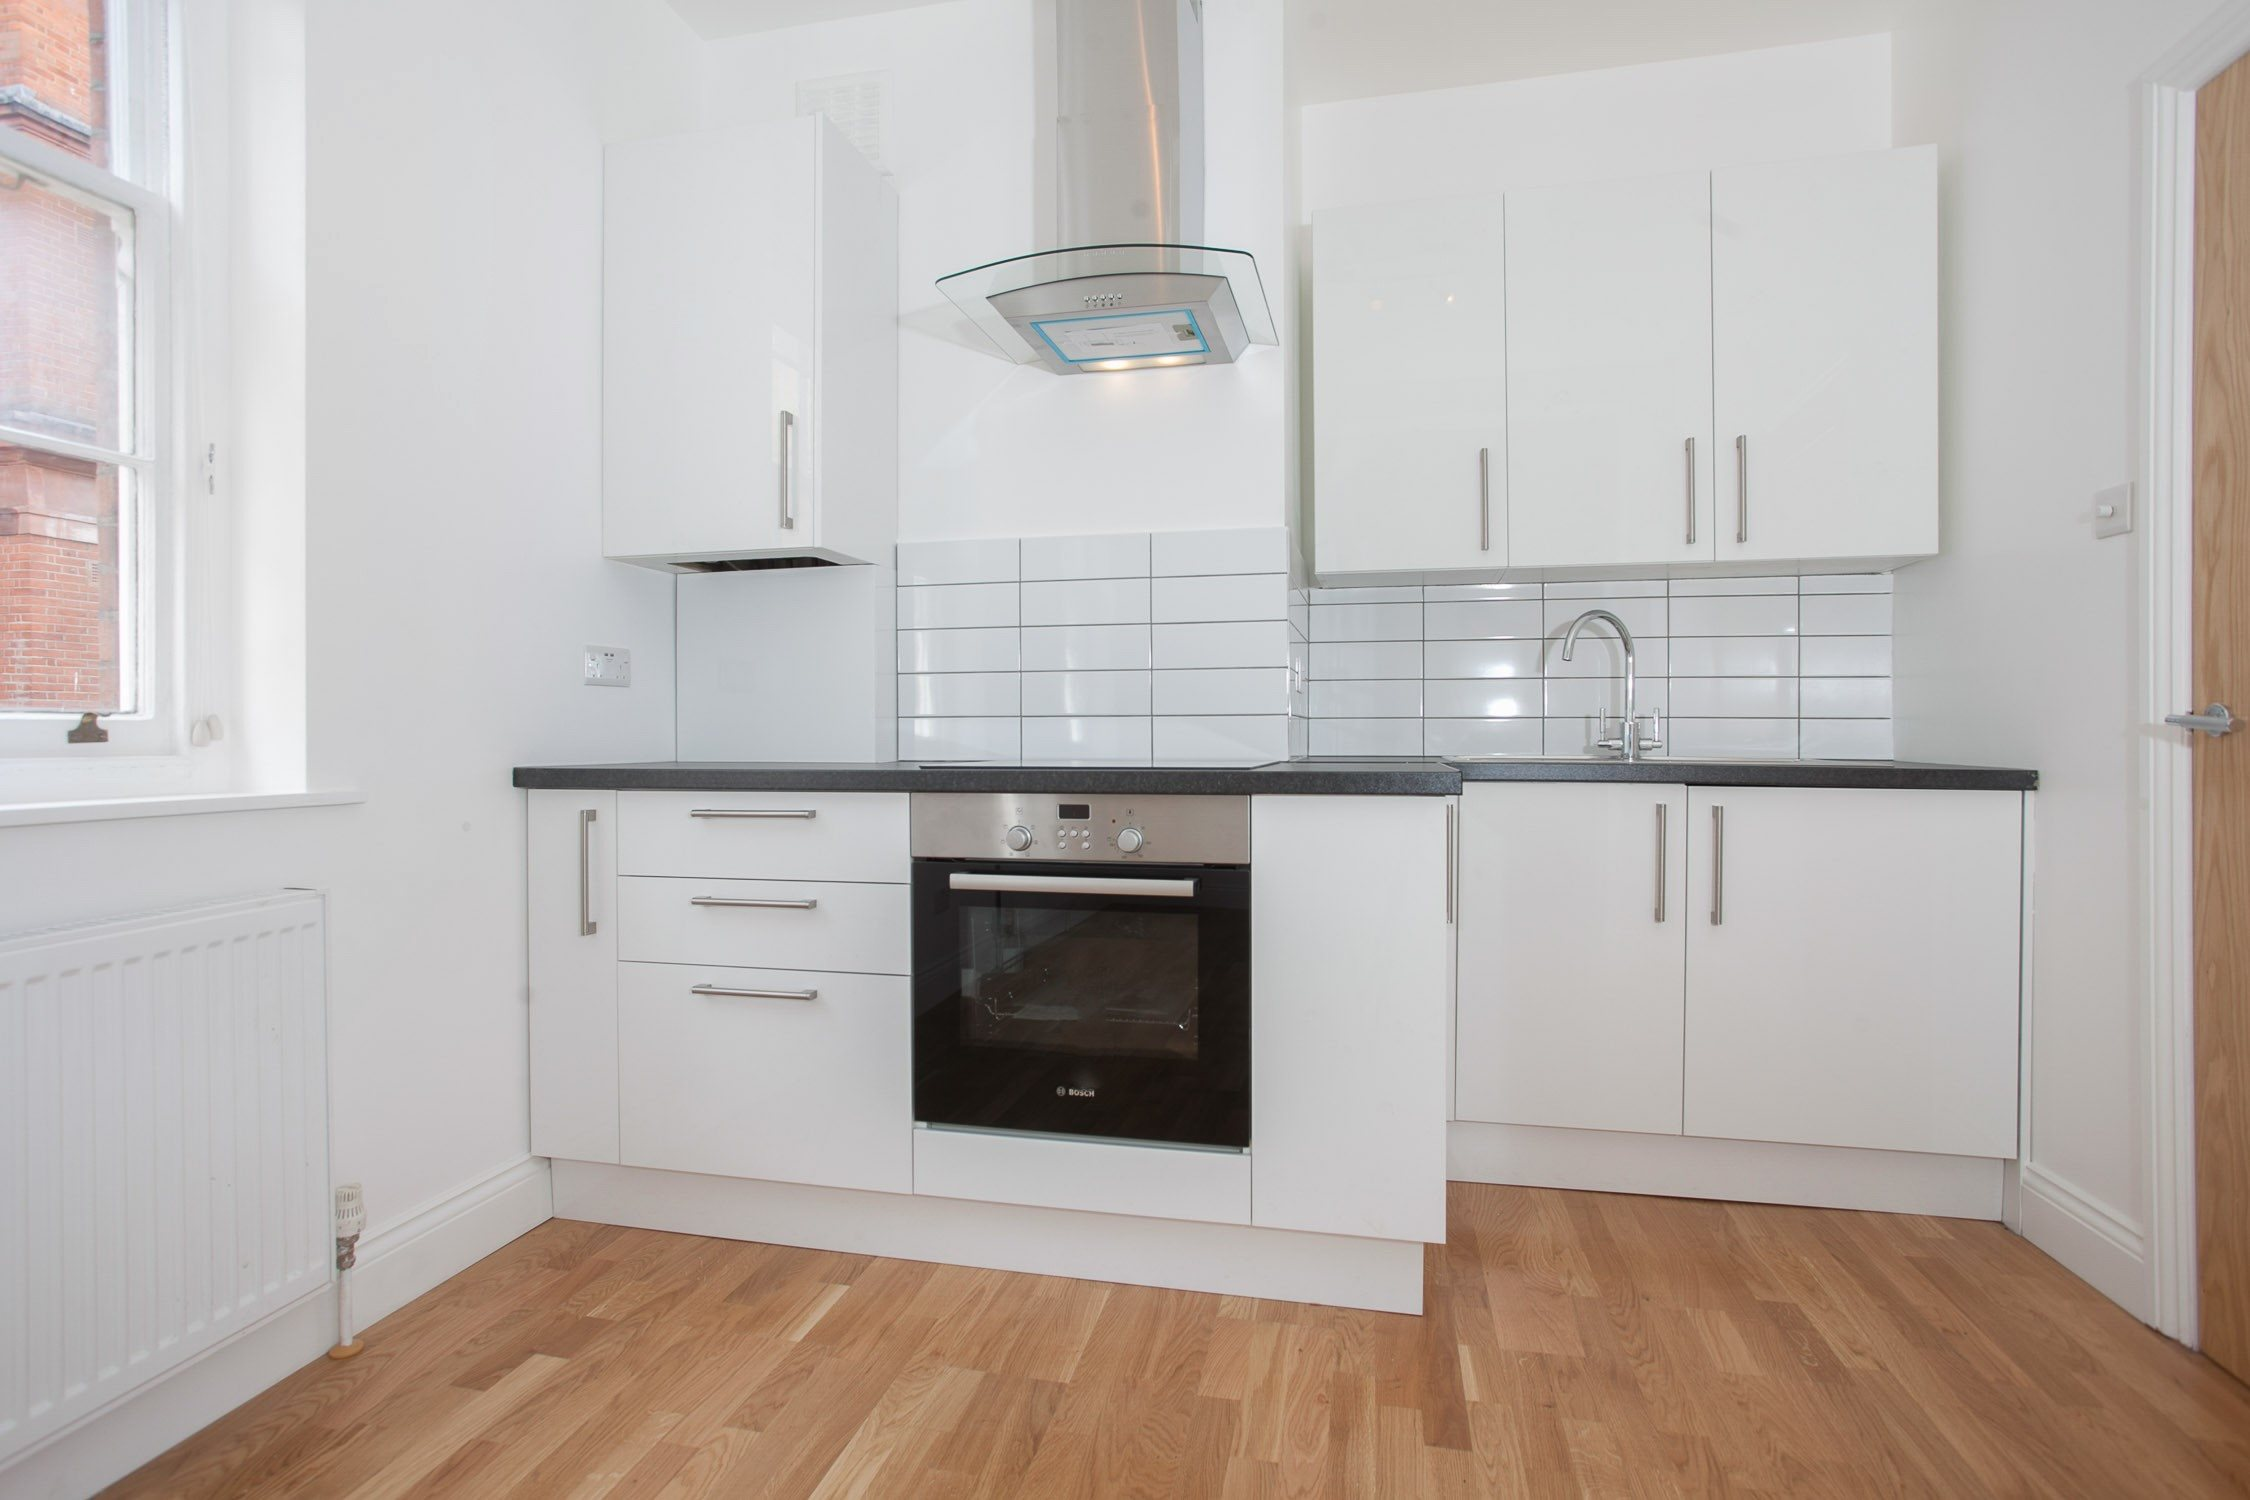 Portico - 1 Bedroom Flat to rent in Bloomsbury: Coptic Street, WC1A ...